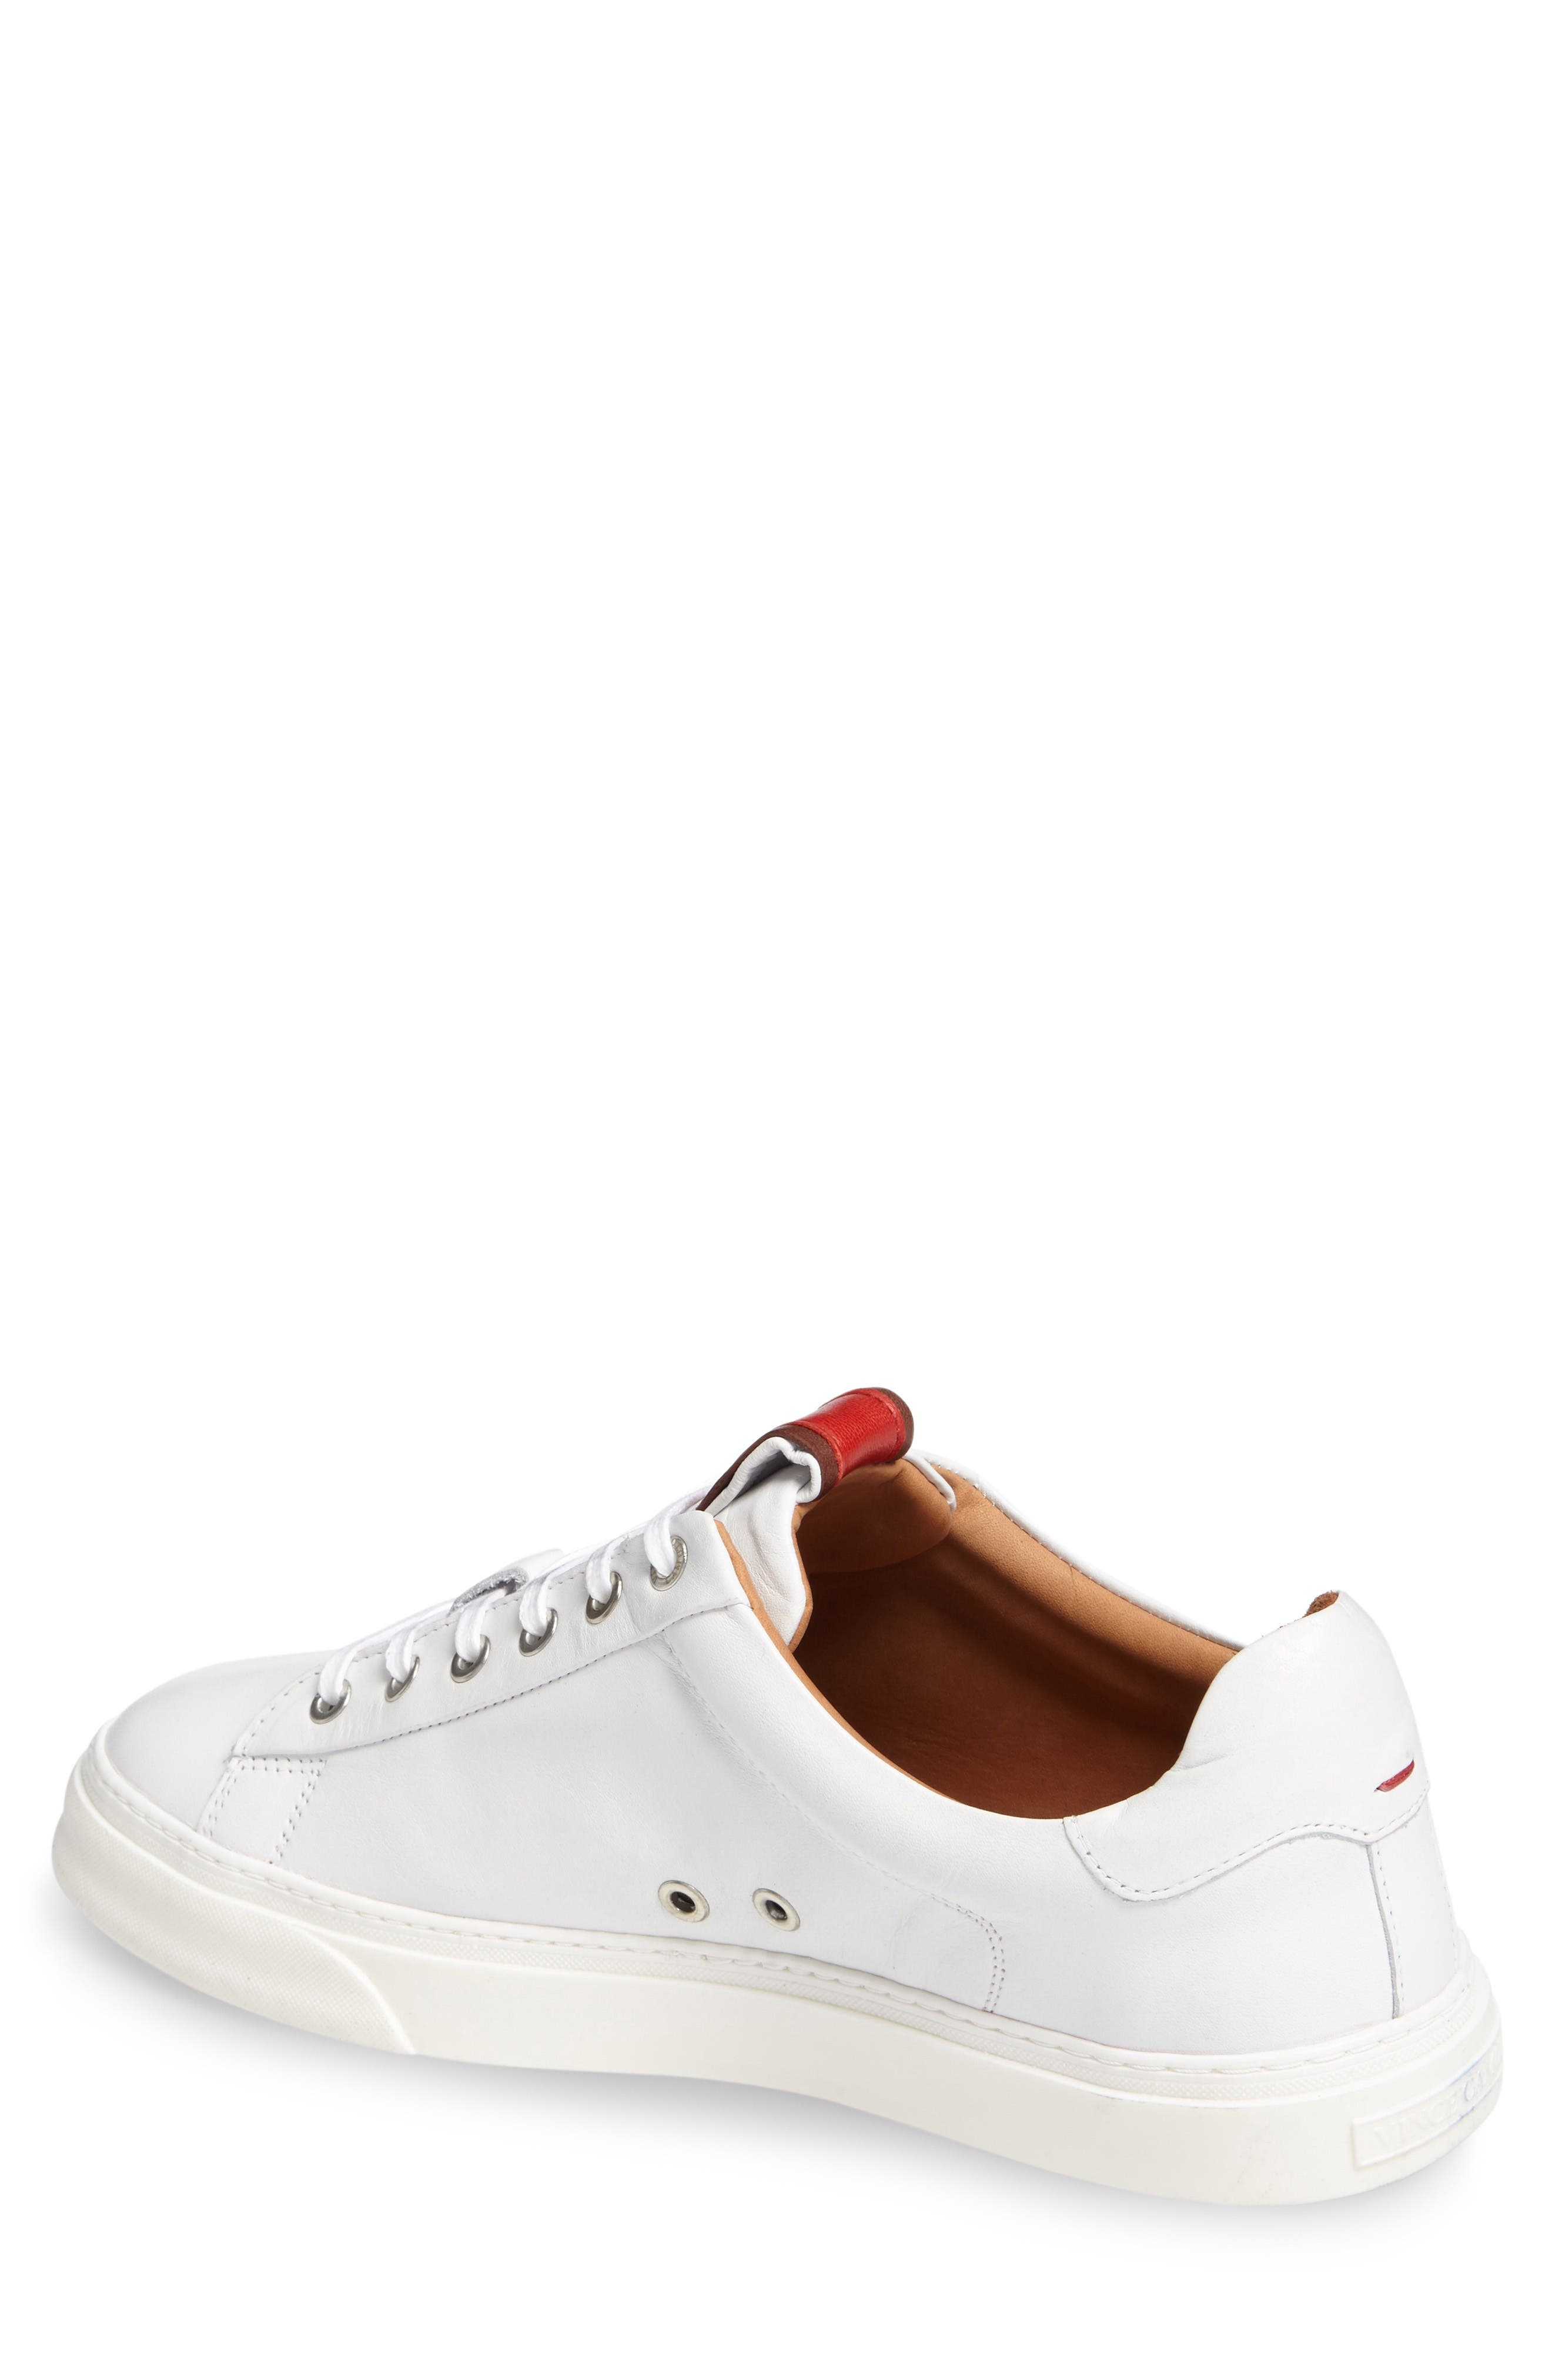 Quin Sneaker,                             Alternate thumbnail 2, color,                             White Leather